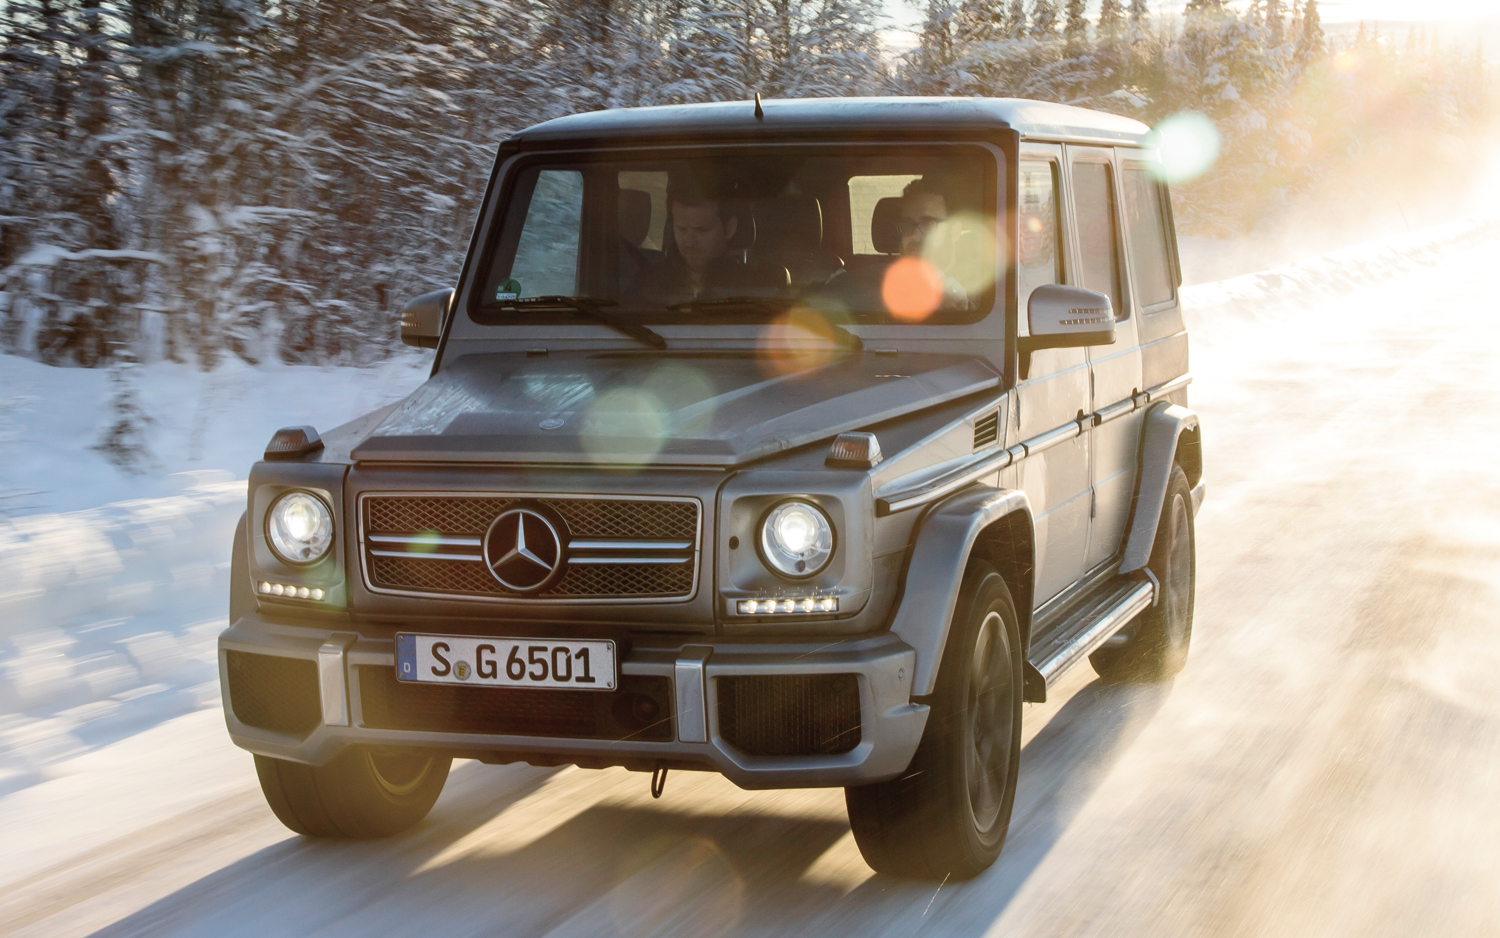 The Recipe Of This Italian Off Road Capable And Oriented High Performance Suv Is Very Similar To The Mercedes Benz G65 Amgs However The Only Major